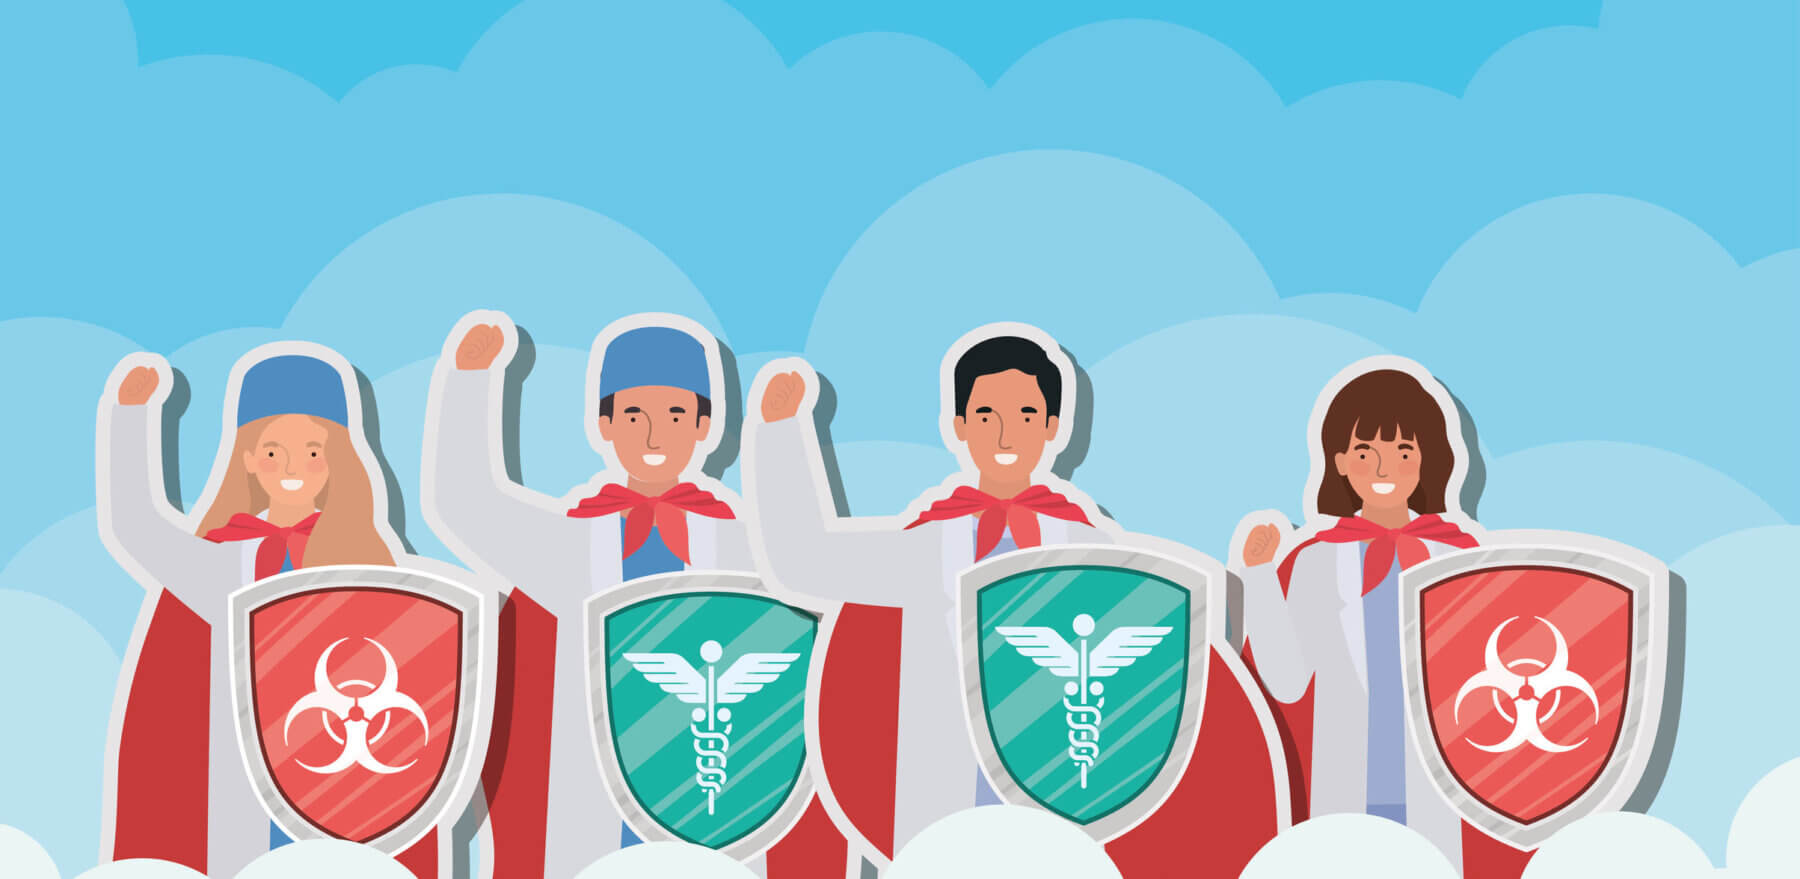 women and men doctors heroes with cape and shield against 2019 ncov virus design of Covid 19 epidemic disease symptoms and medical theme Vector illustration